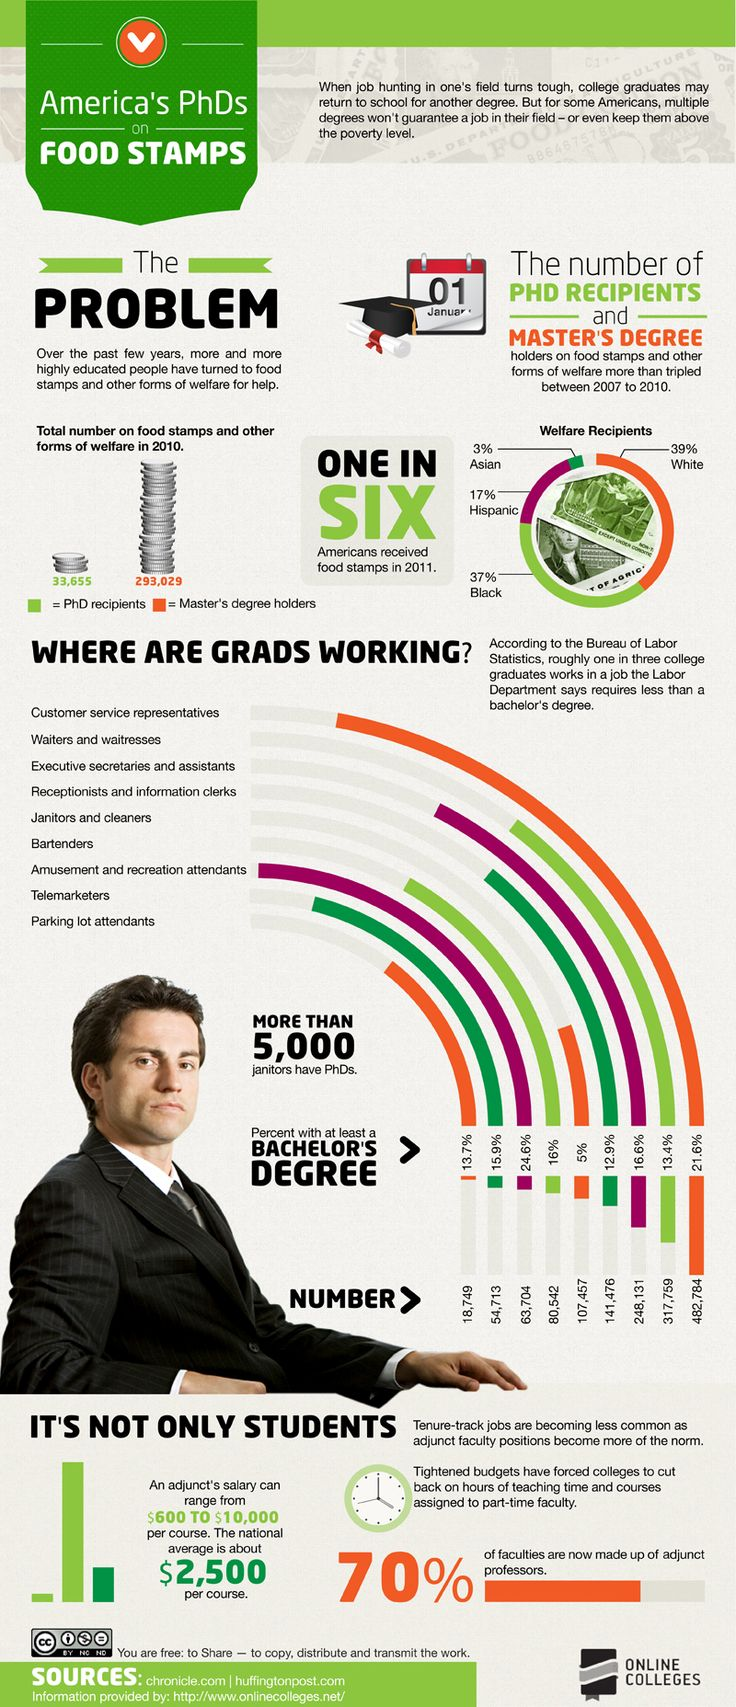 America's Phds On Food Stamps (infographic)